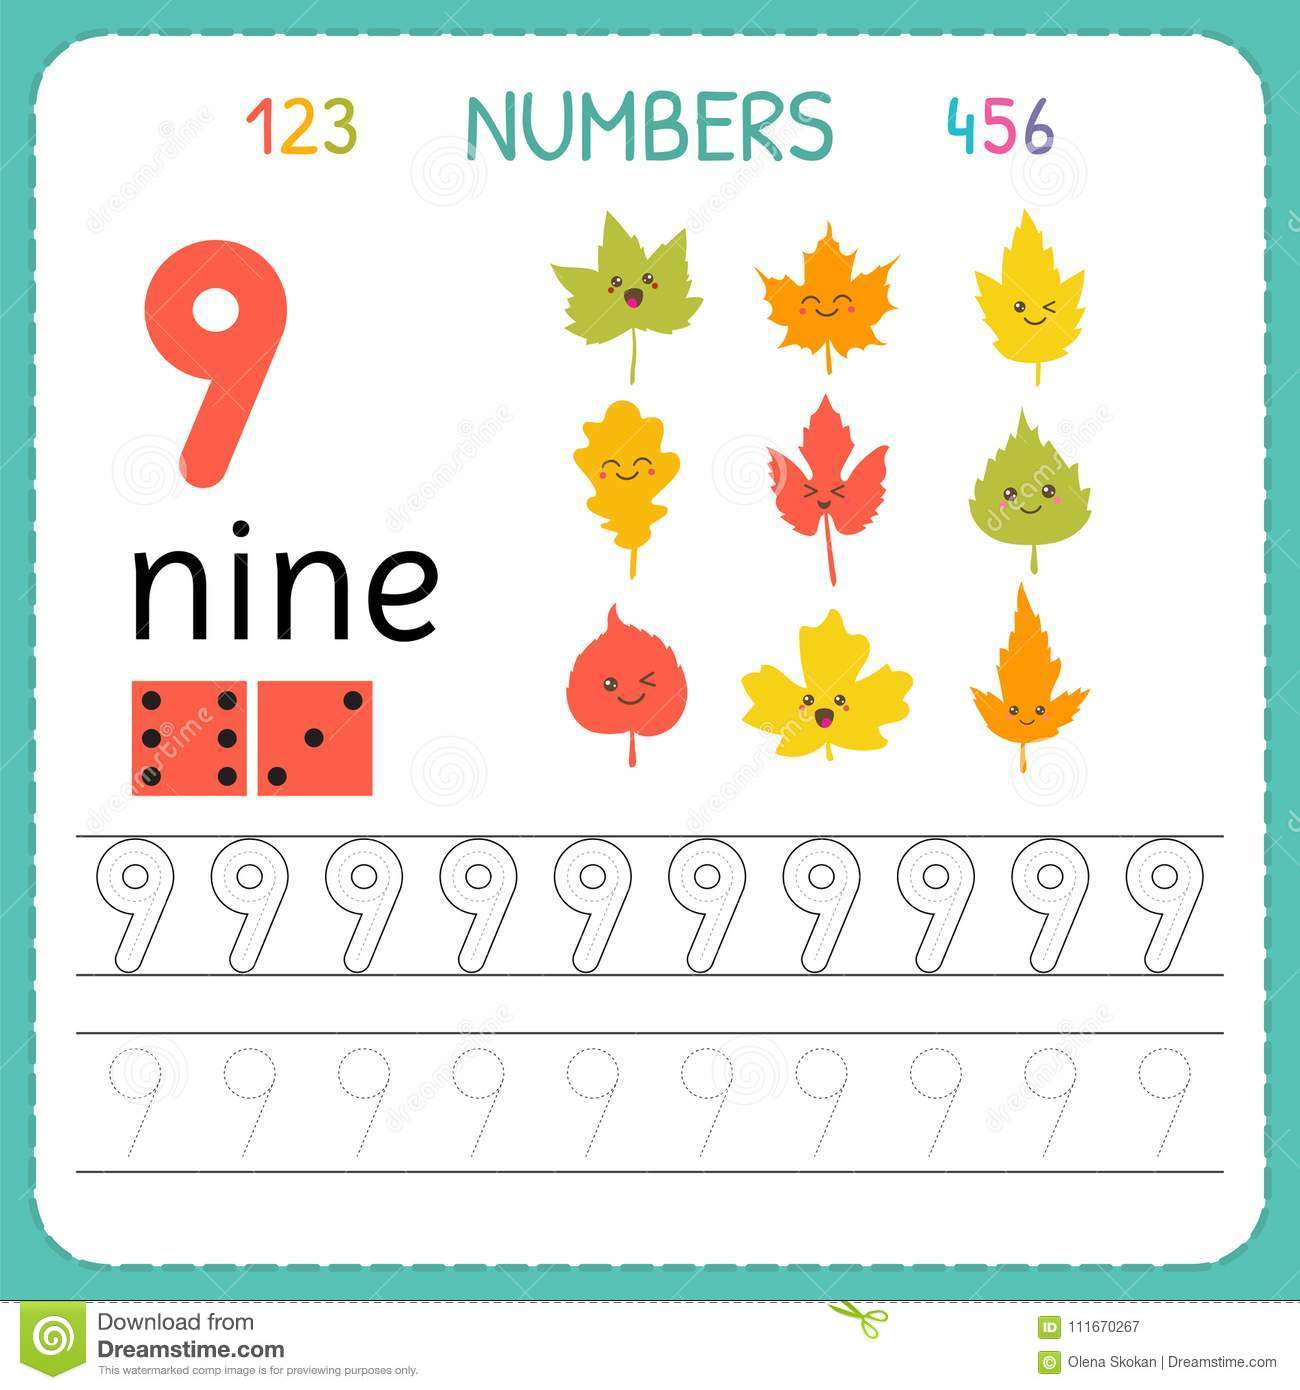 Numbers Tracing Worksheet For Preschool And Kindergarten Writing Number Nine Exercises For